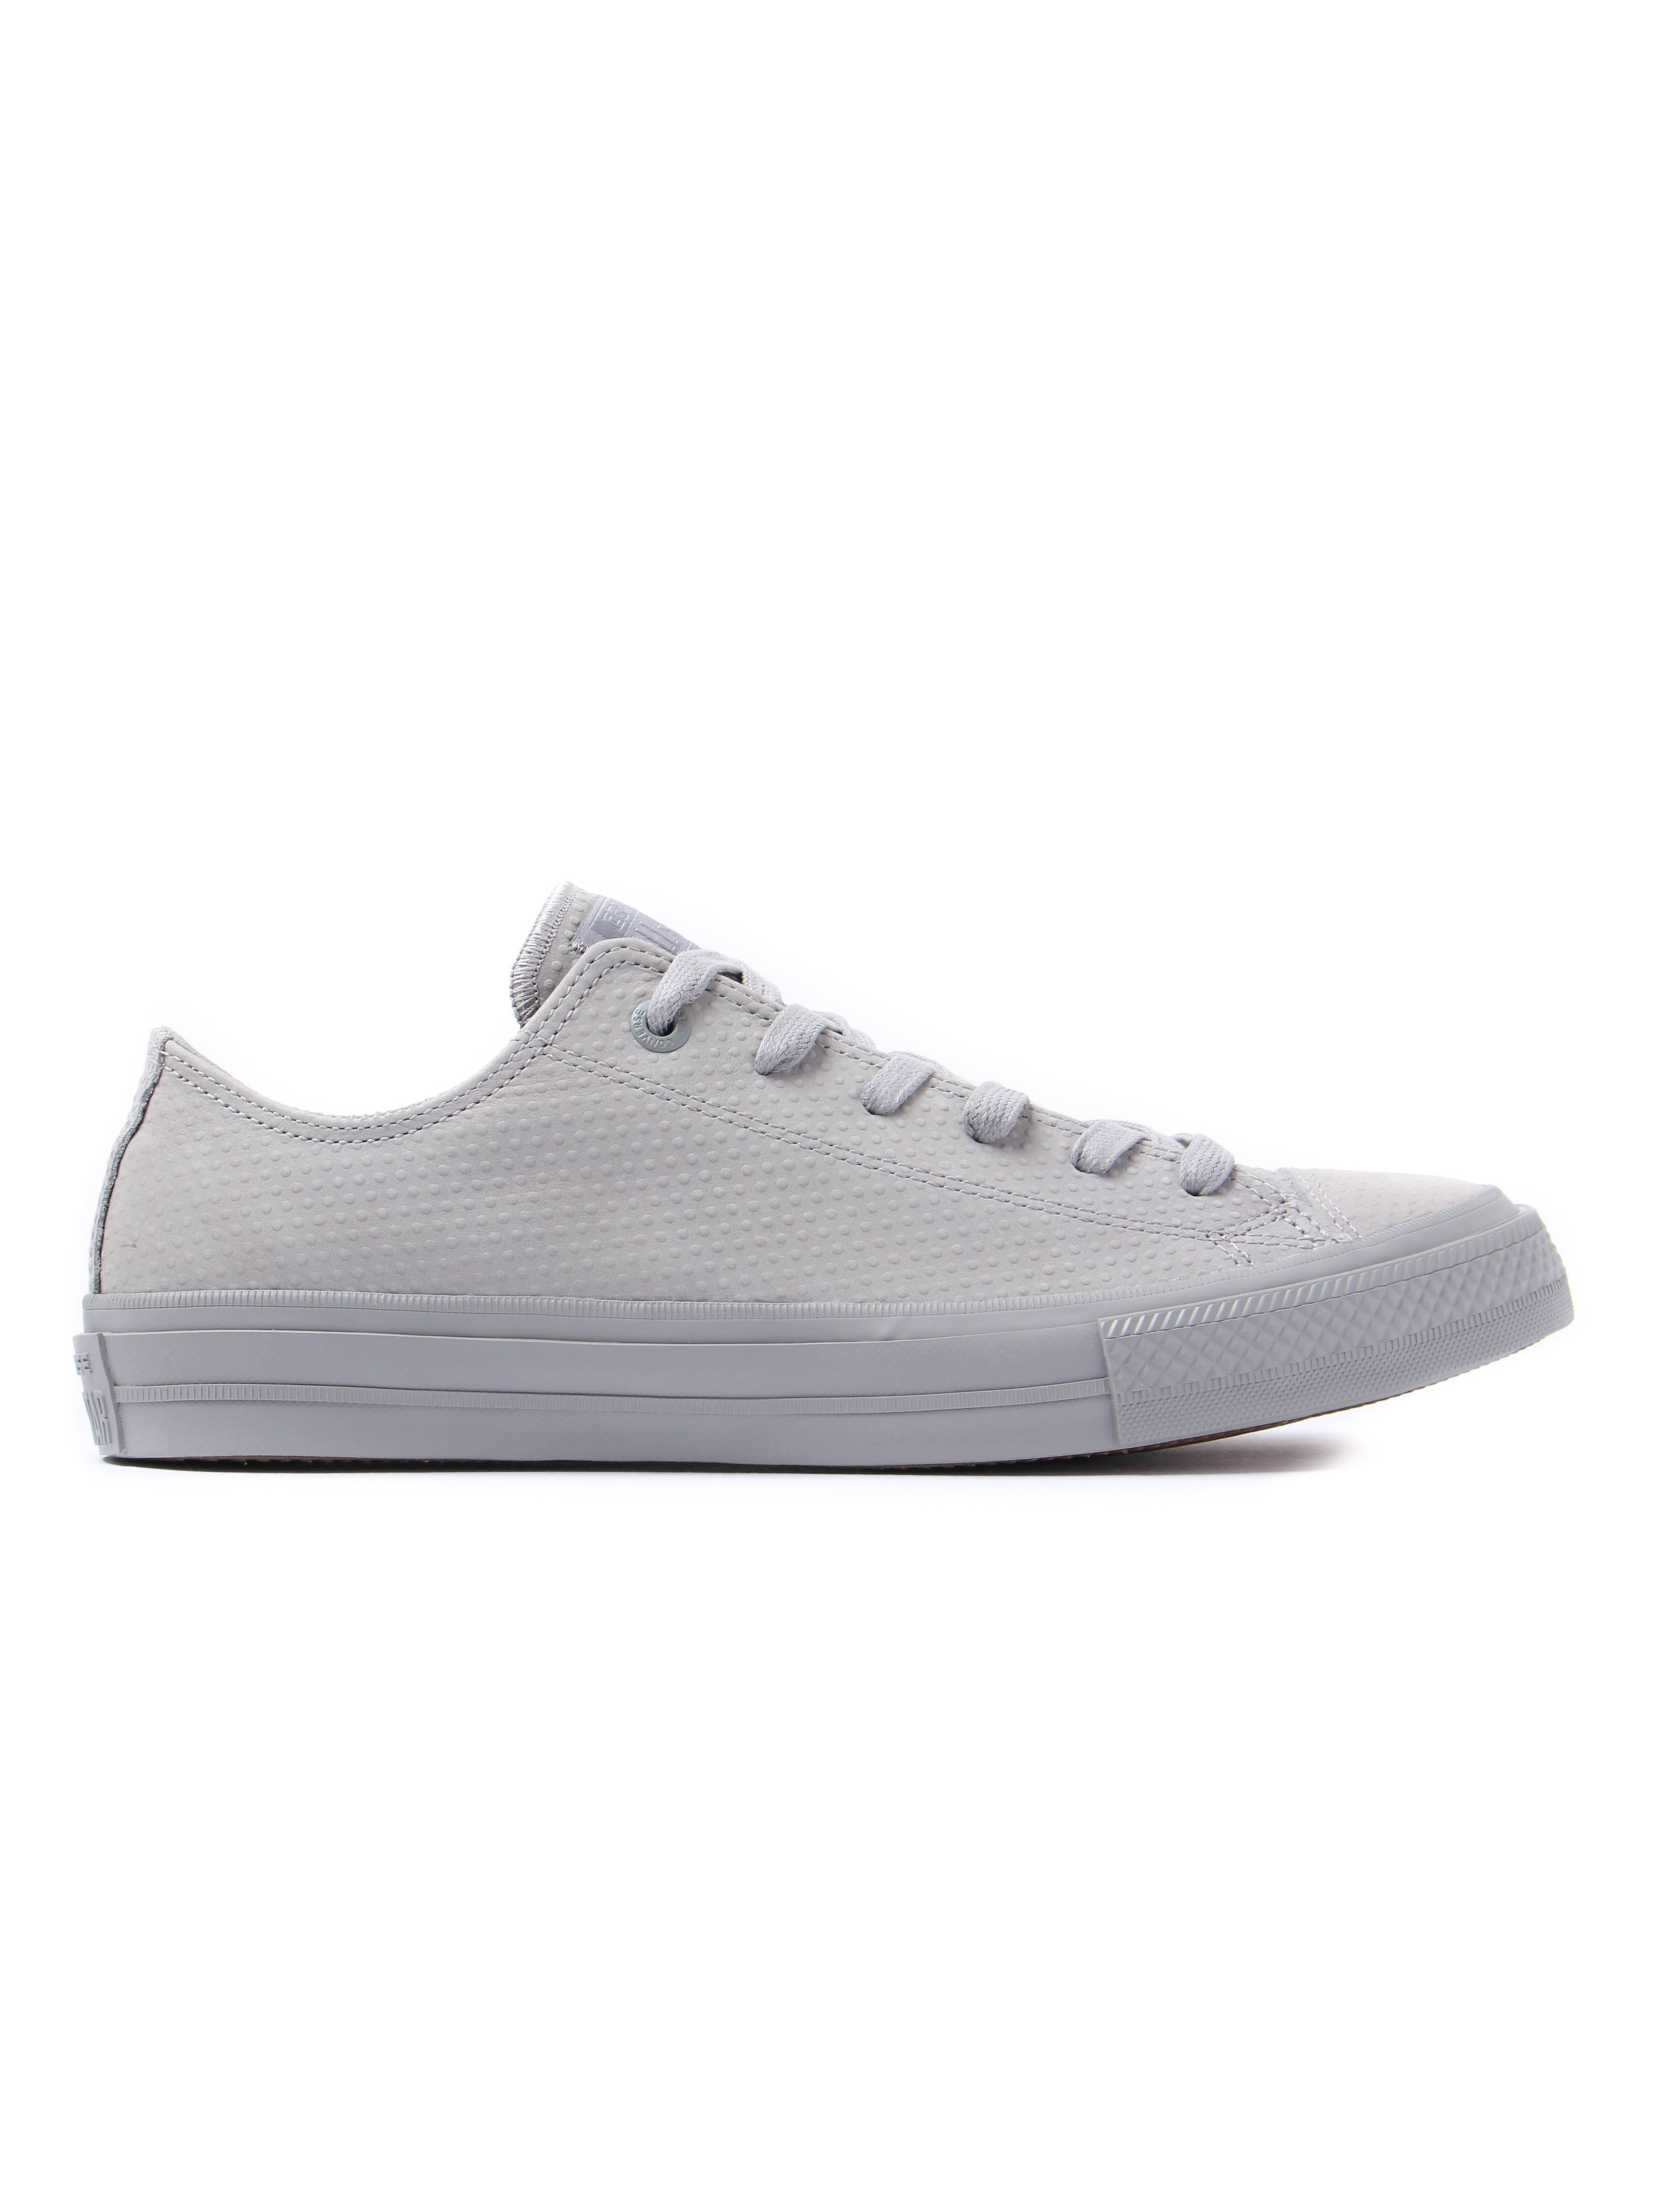 Converse Men's Chuck Taylor All Star II OX Leather Trainers - Dolphin Grey